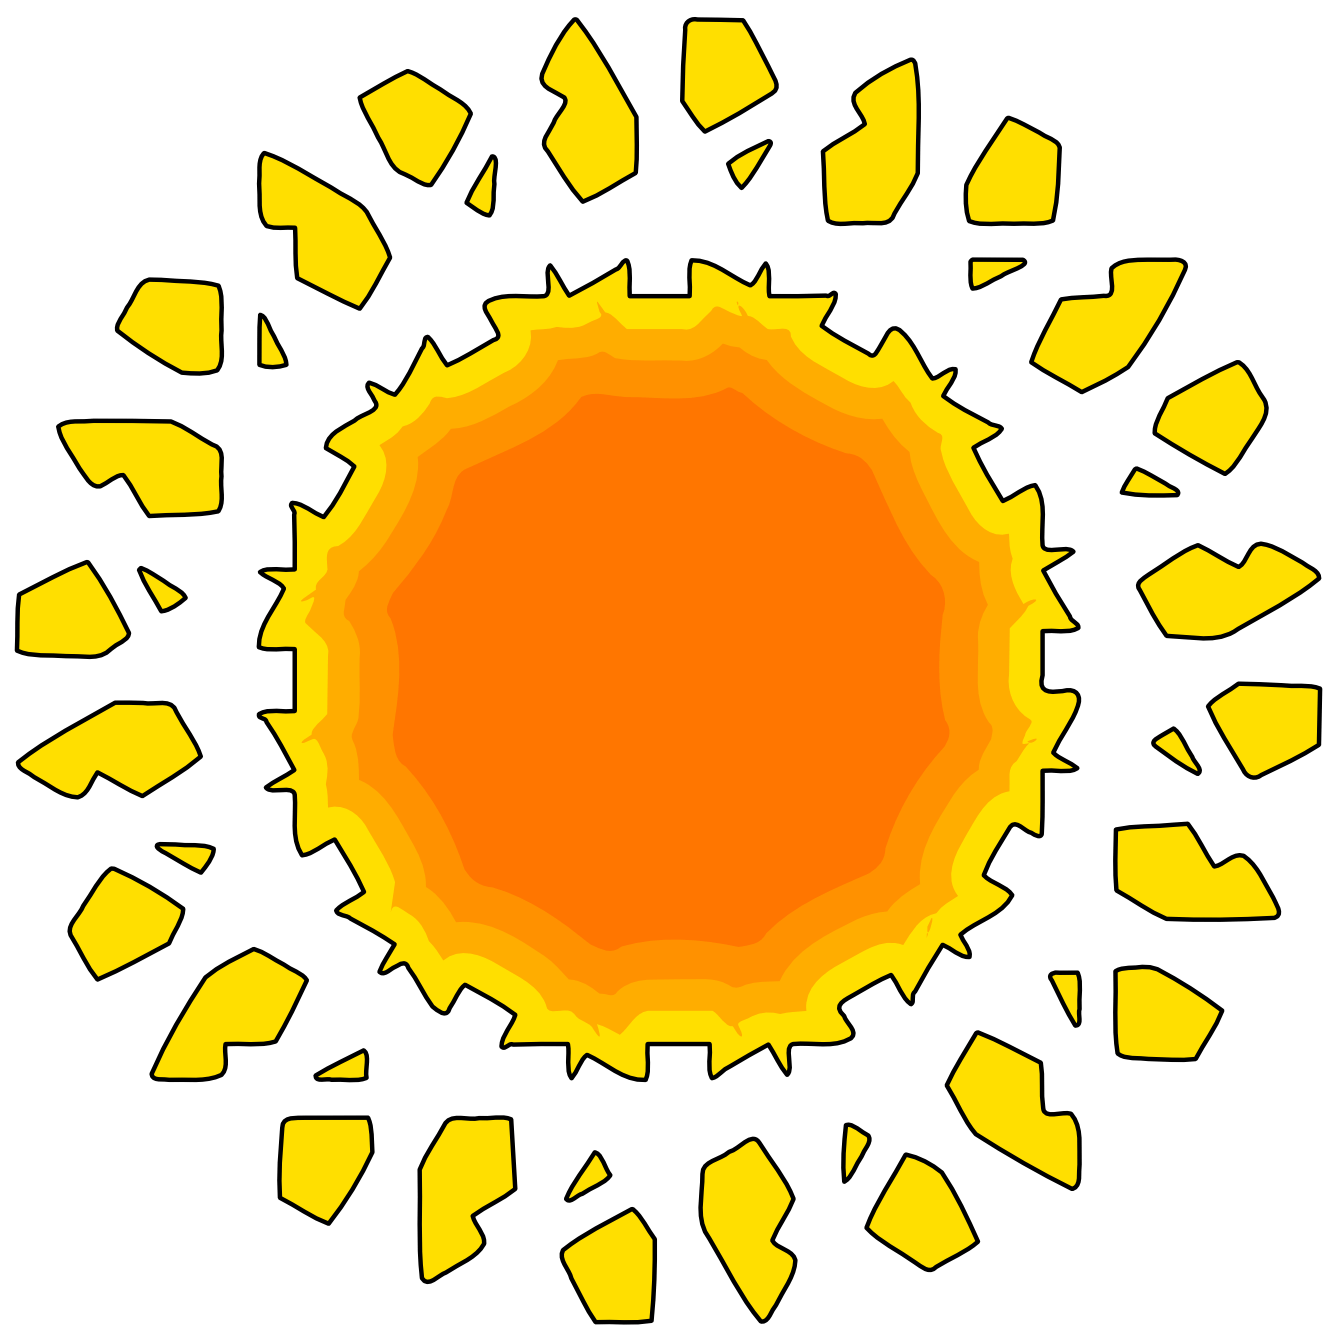 The sun shining clipart png image download Sunbeam Clipart at GetDrawings.com | Free for personal use Sunbeam ... image download